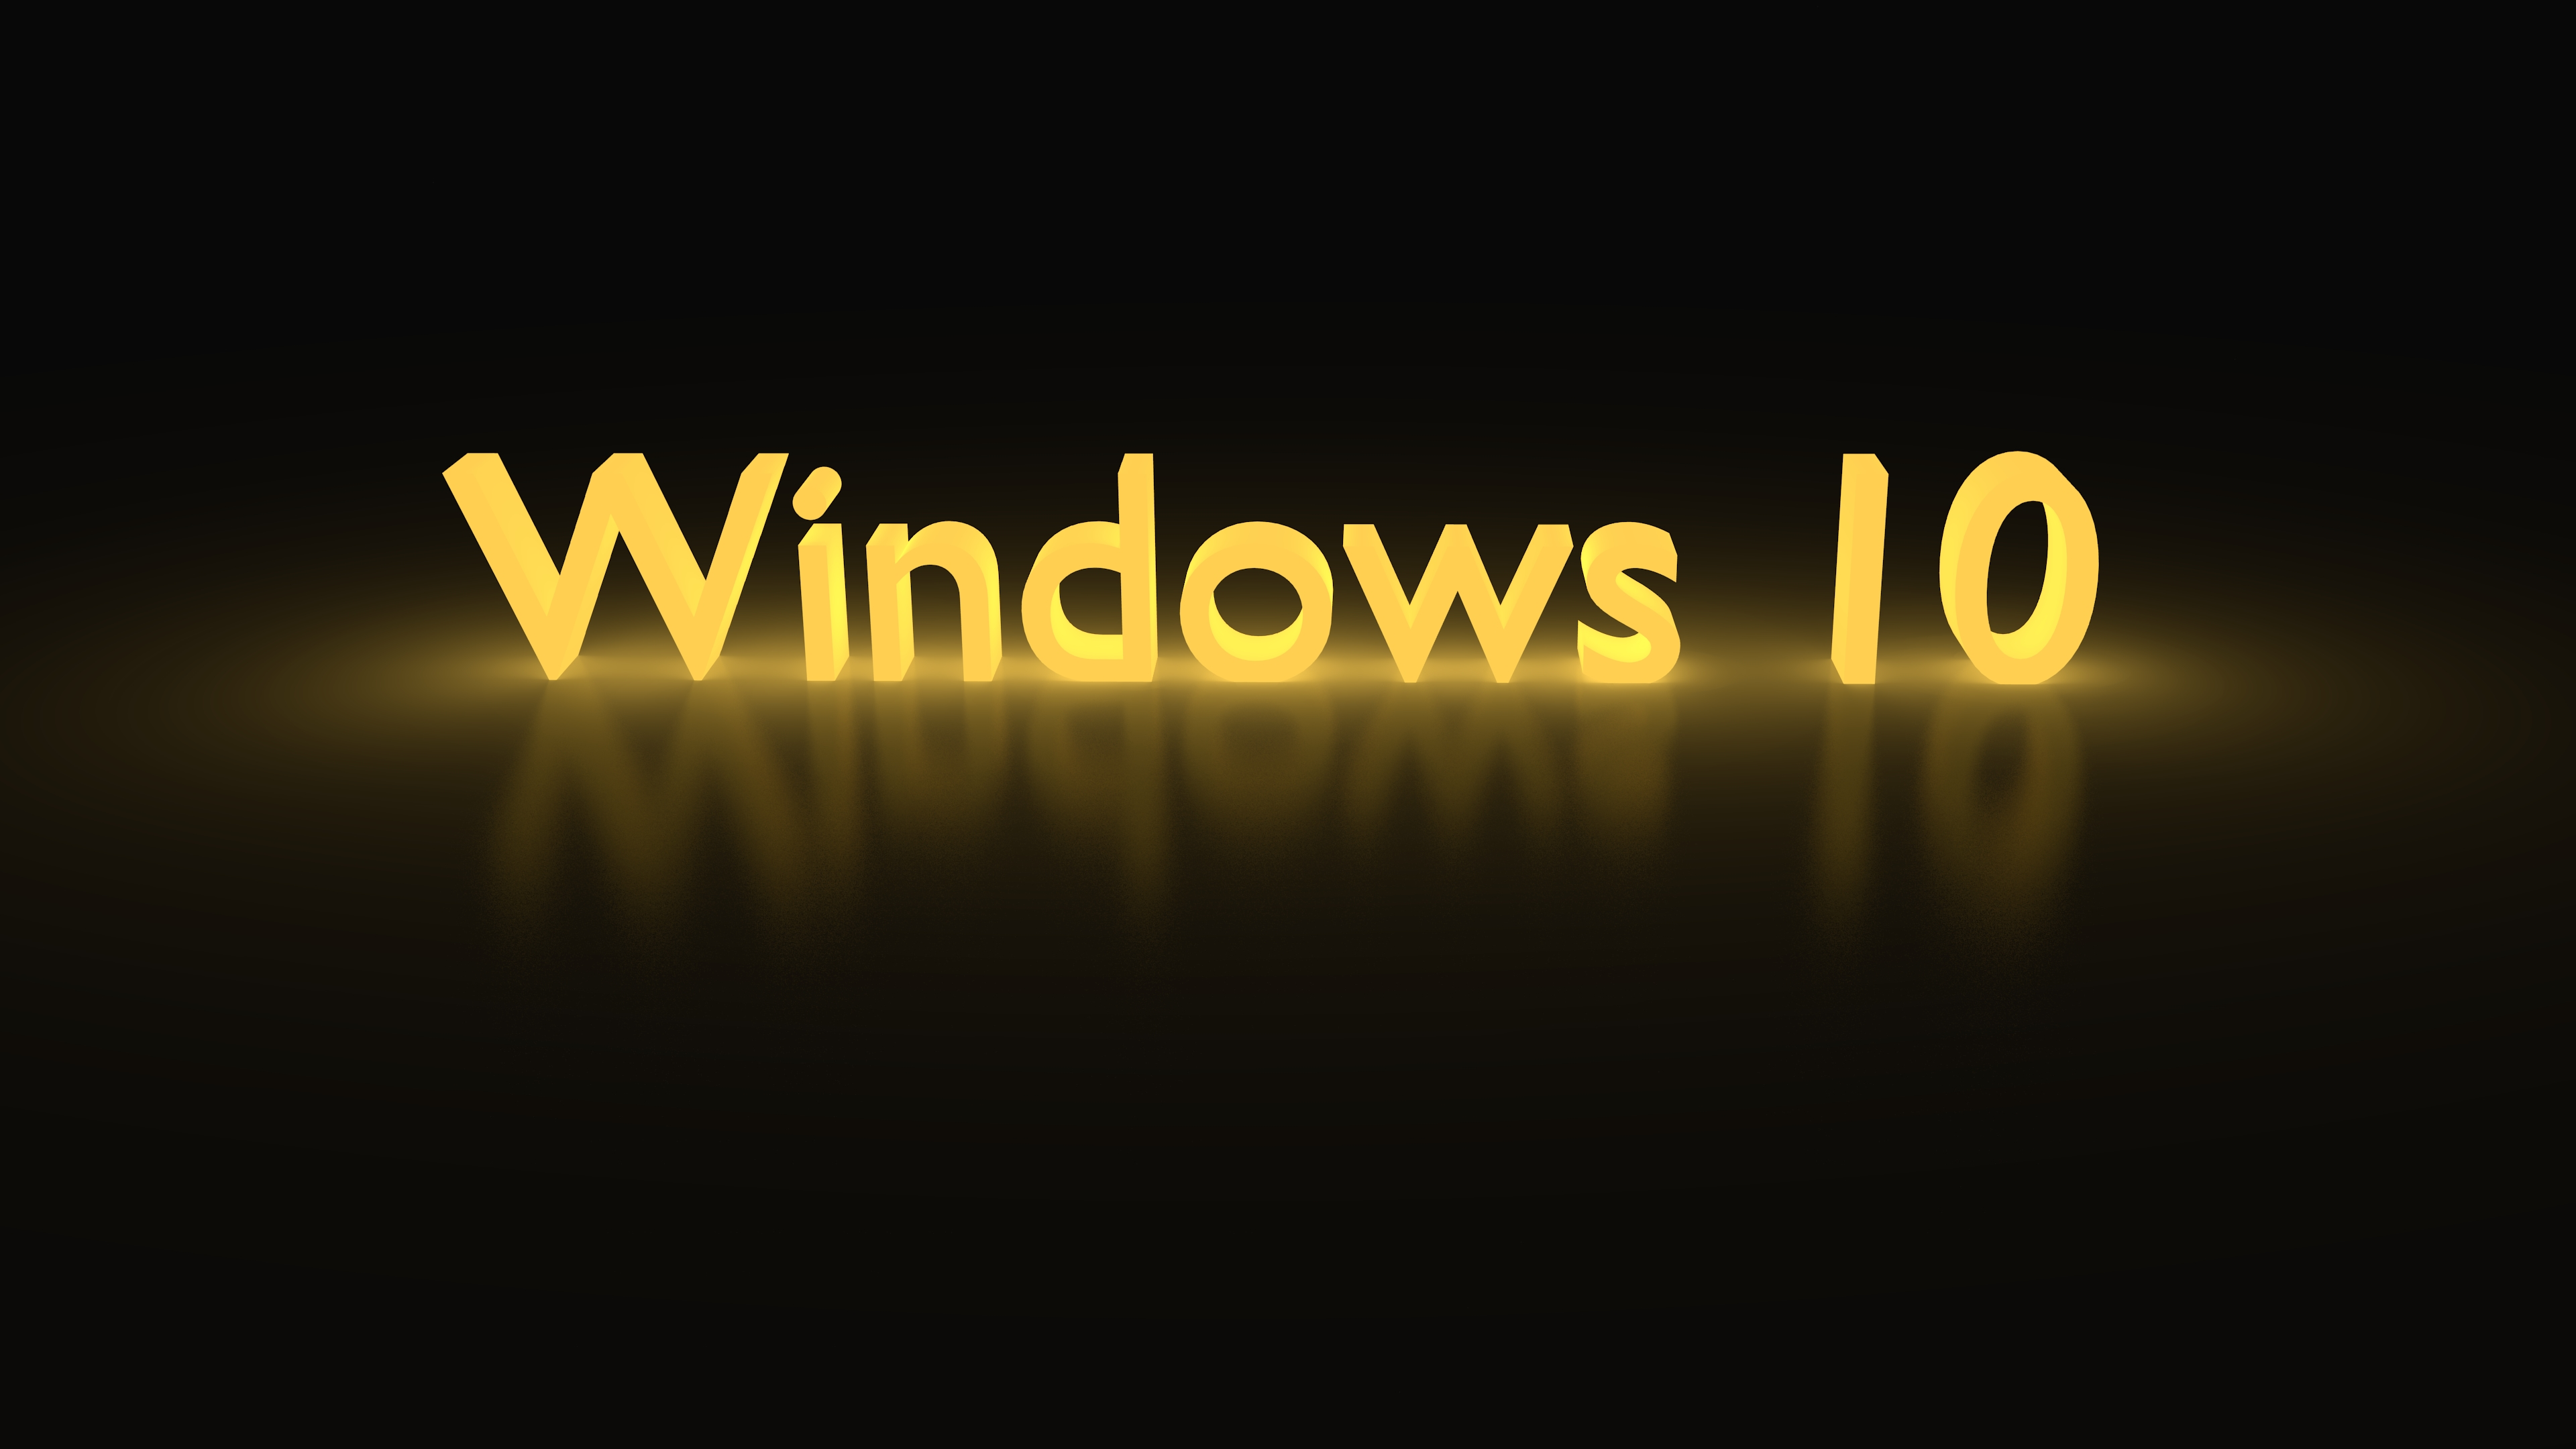 Windows 10 Yellow Glowing 4k Ultra Hd Wallpaper